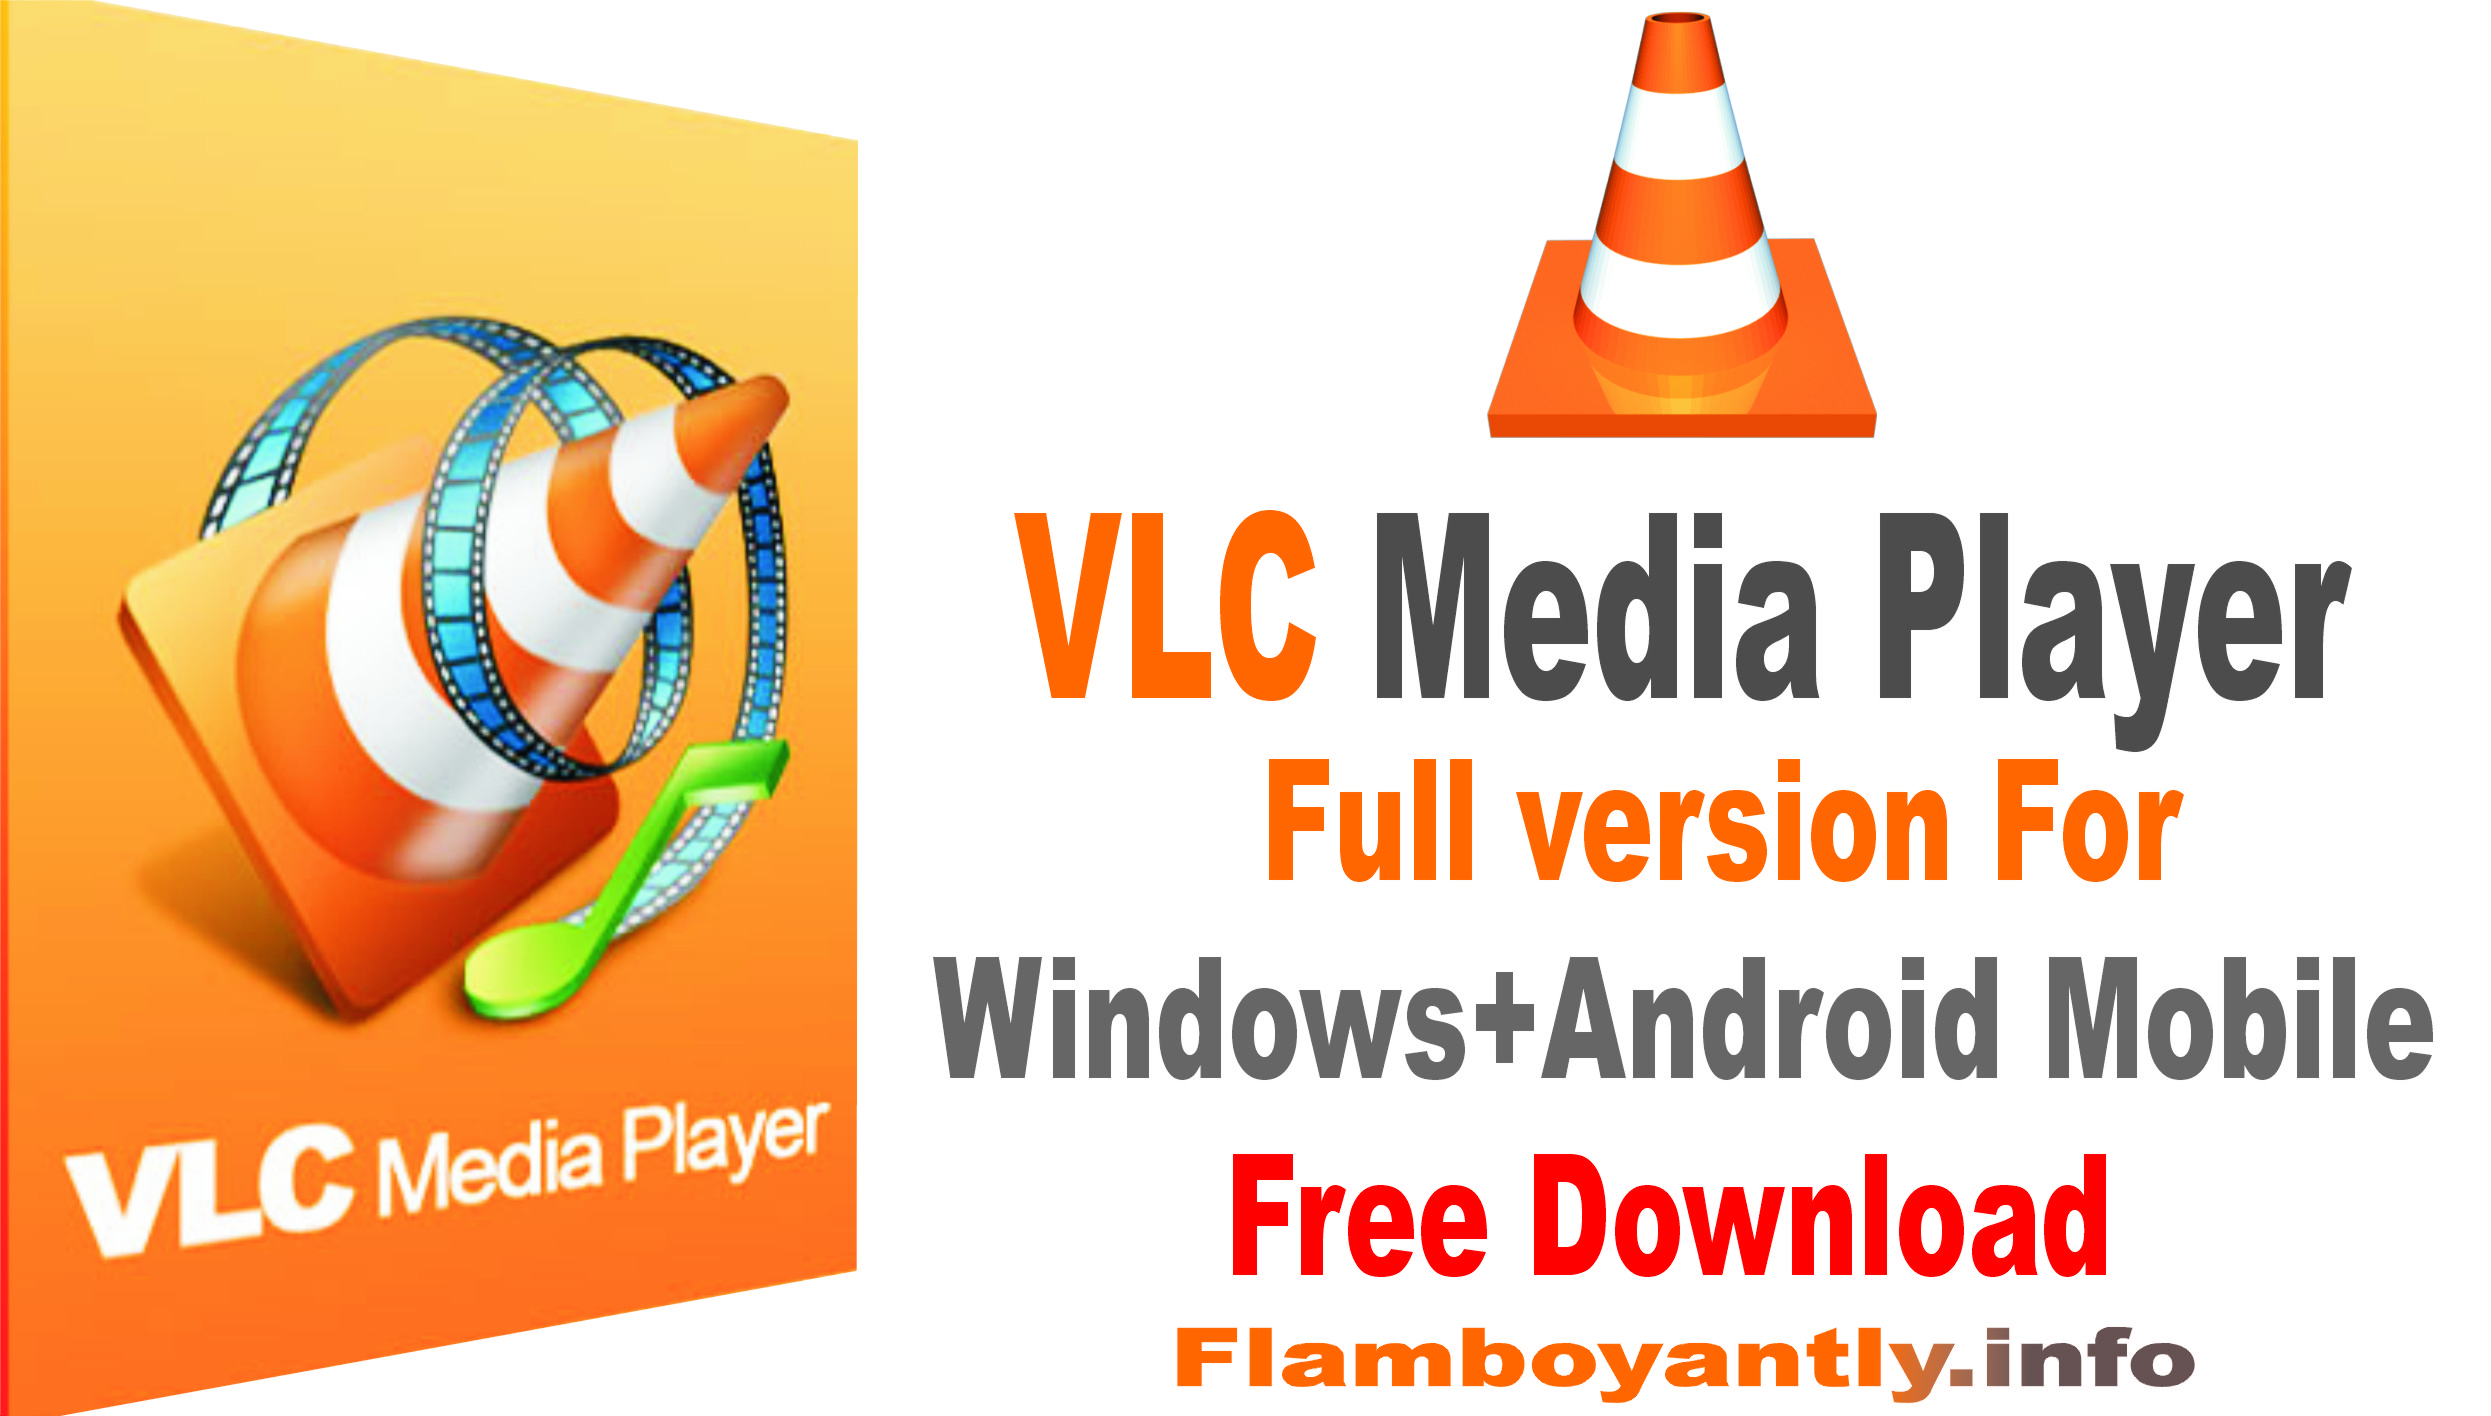 VLC Media Player full version For Windows+Android Mobile Free Download